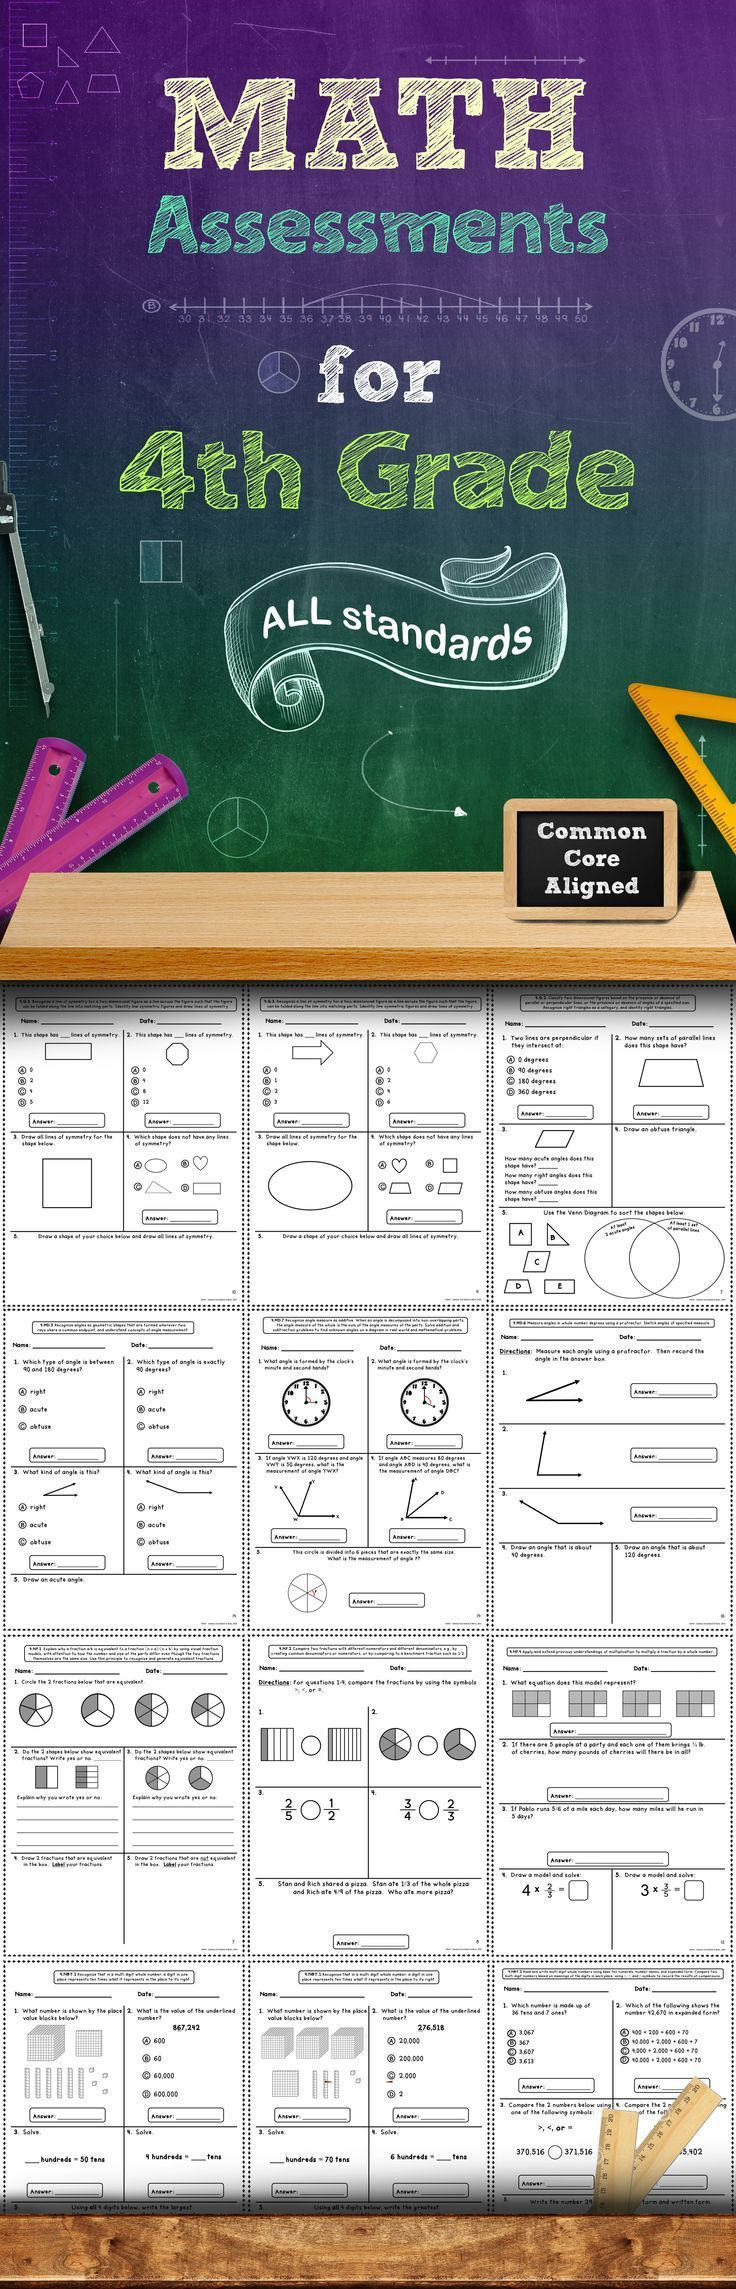 Common Core Math Assessments - 4th Grade | Mathematik und Mathe